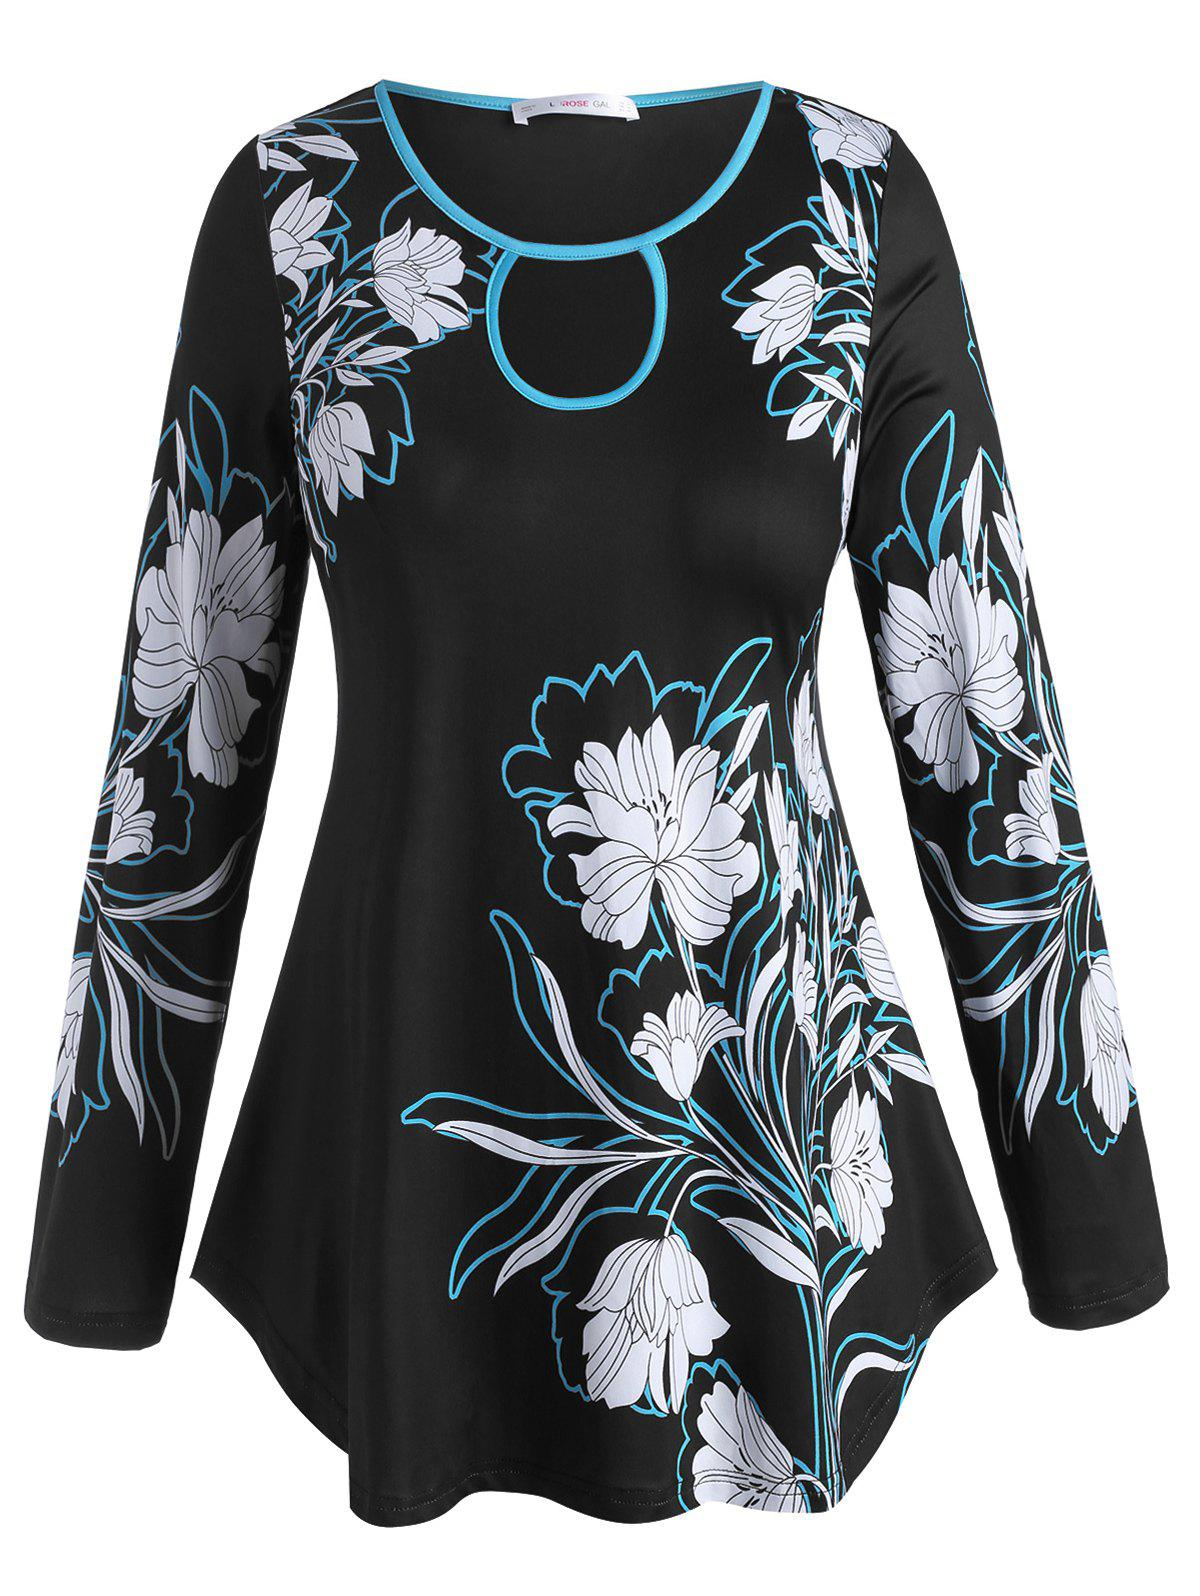 Plus Size Cutout Flower Pattern Long Sleeve Tee - BLACK 5X